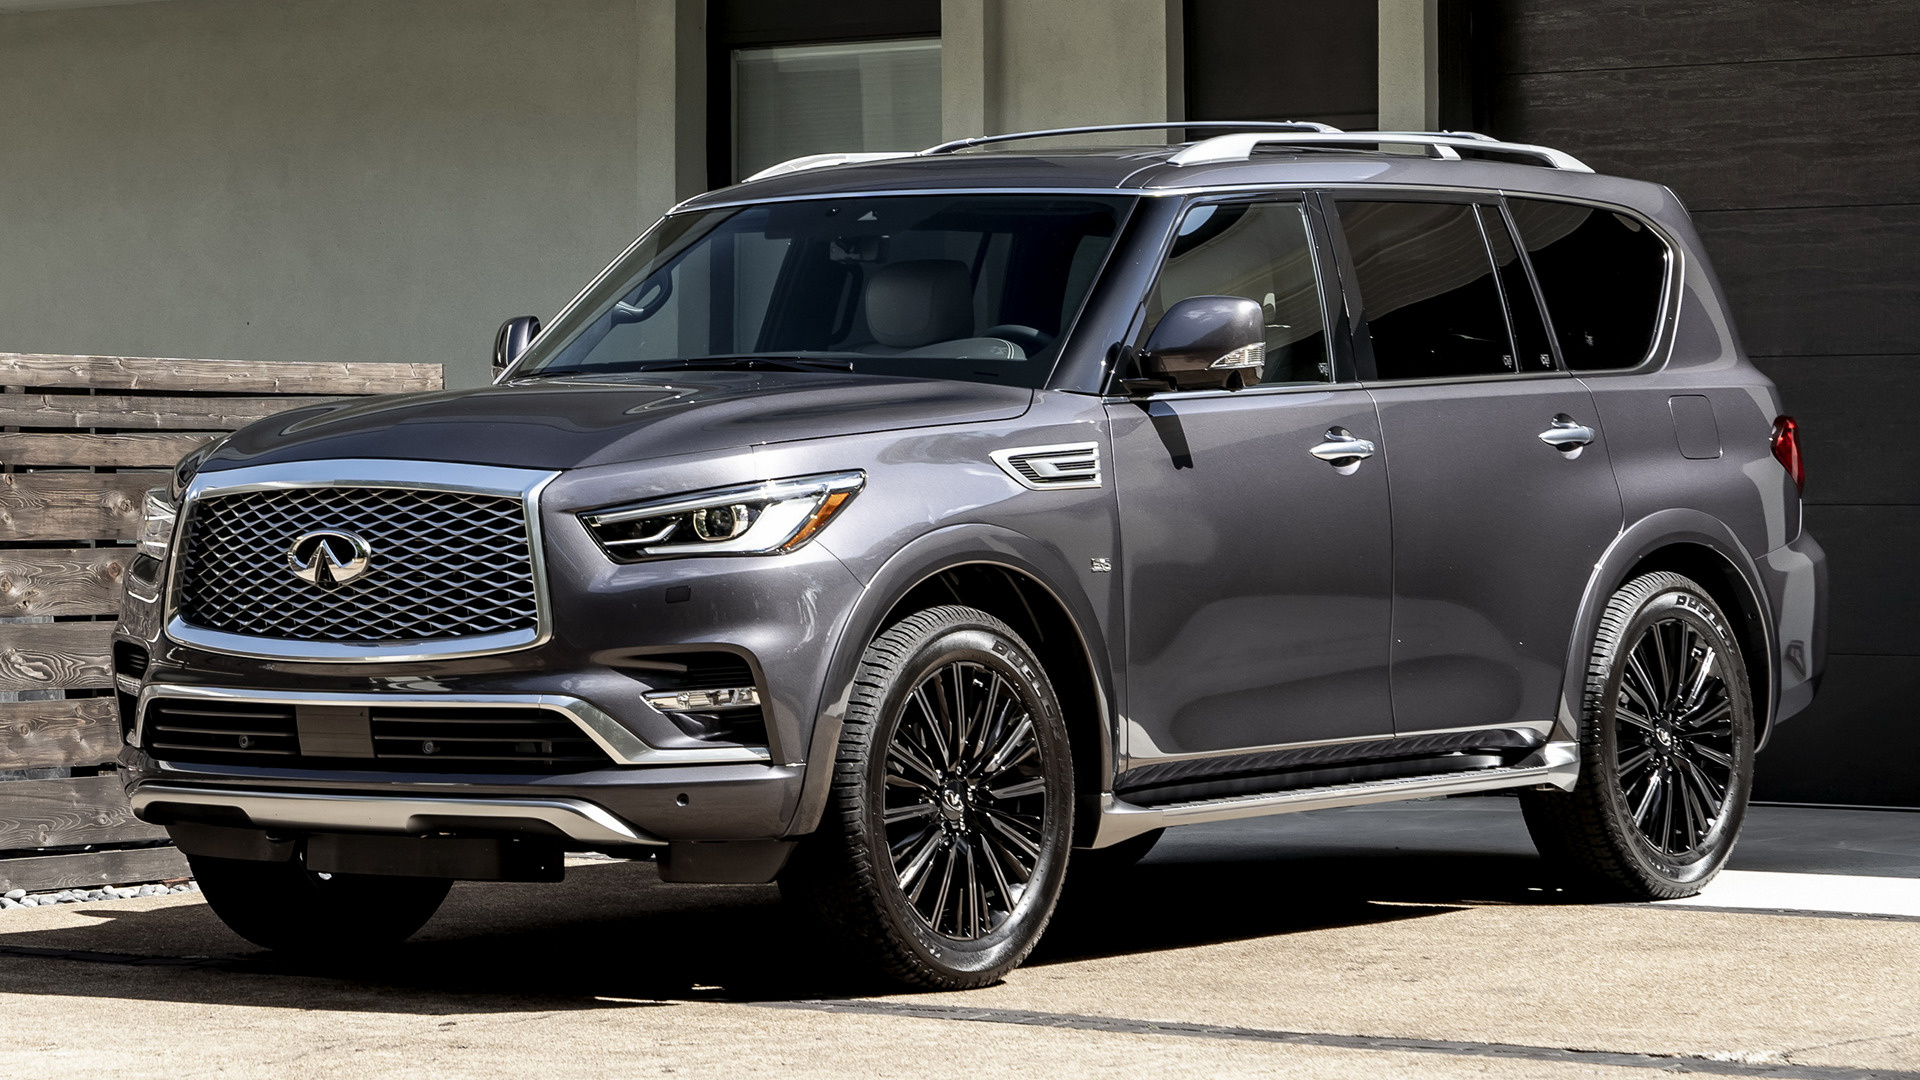 2019 Infiniti QX80 Limited - Wallpapers and HD Images ...